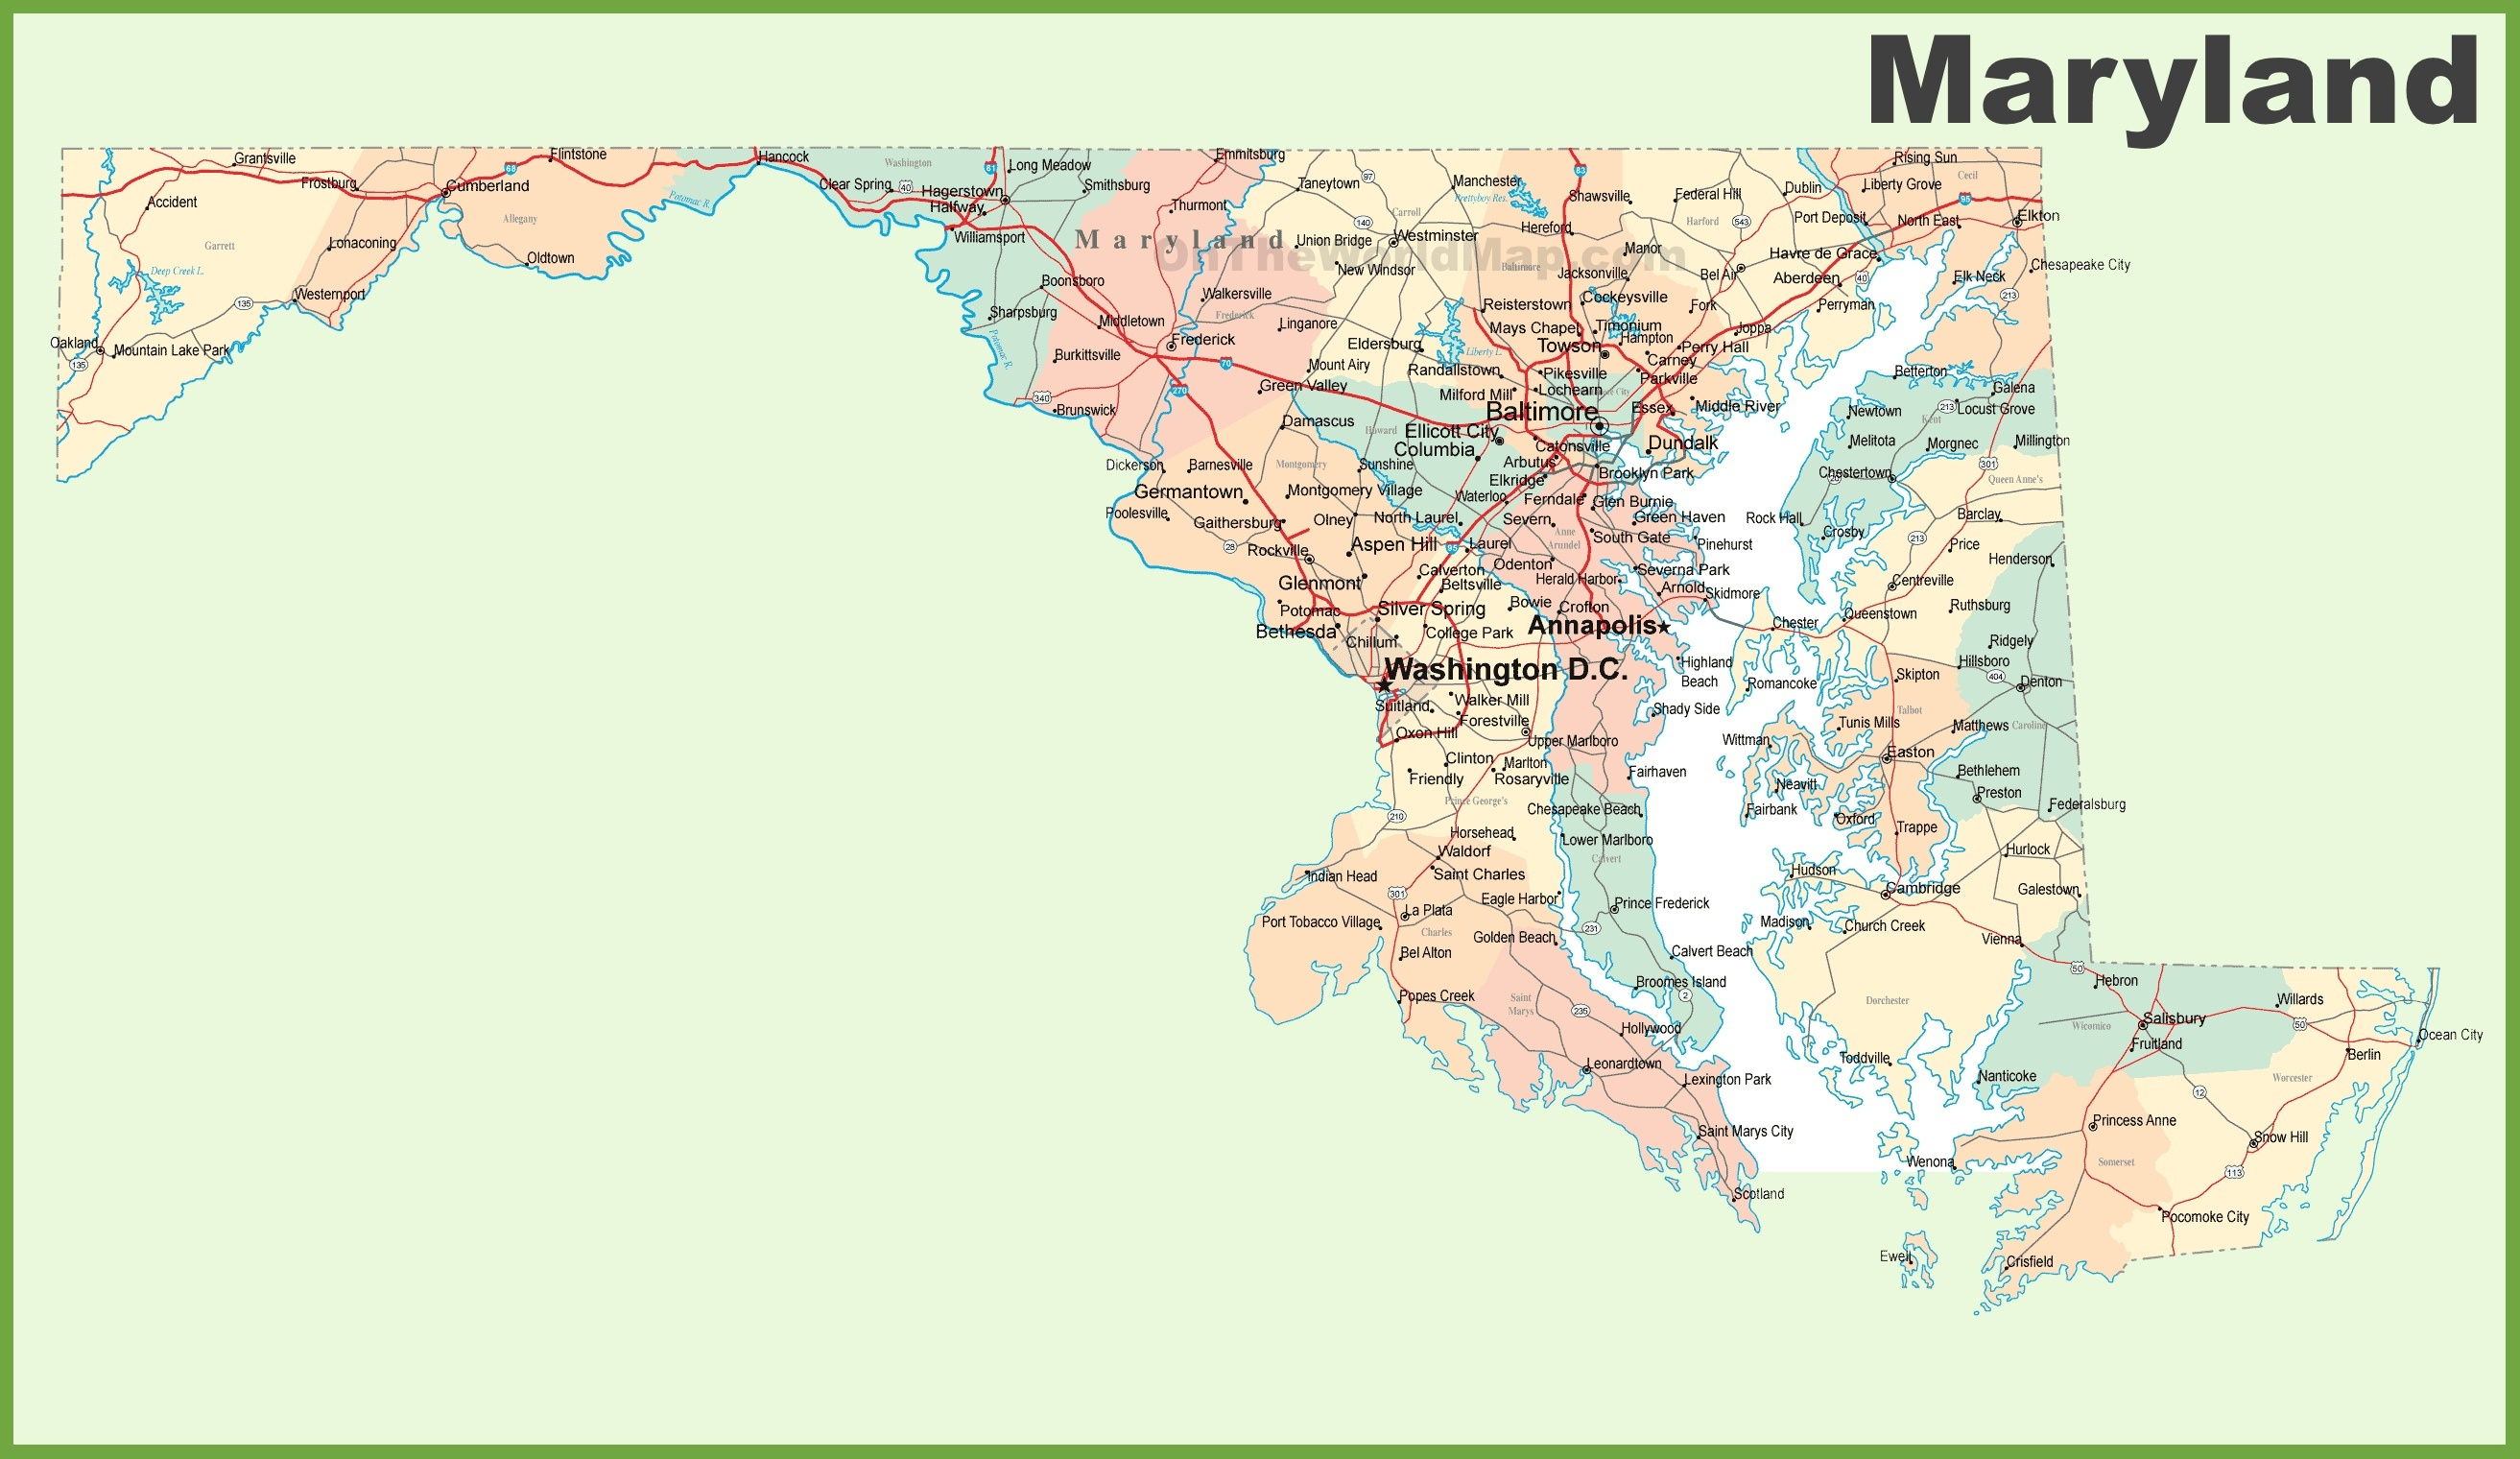 Road Map Of Maryland With Cities - Free Printable Map Of Maryland